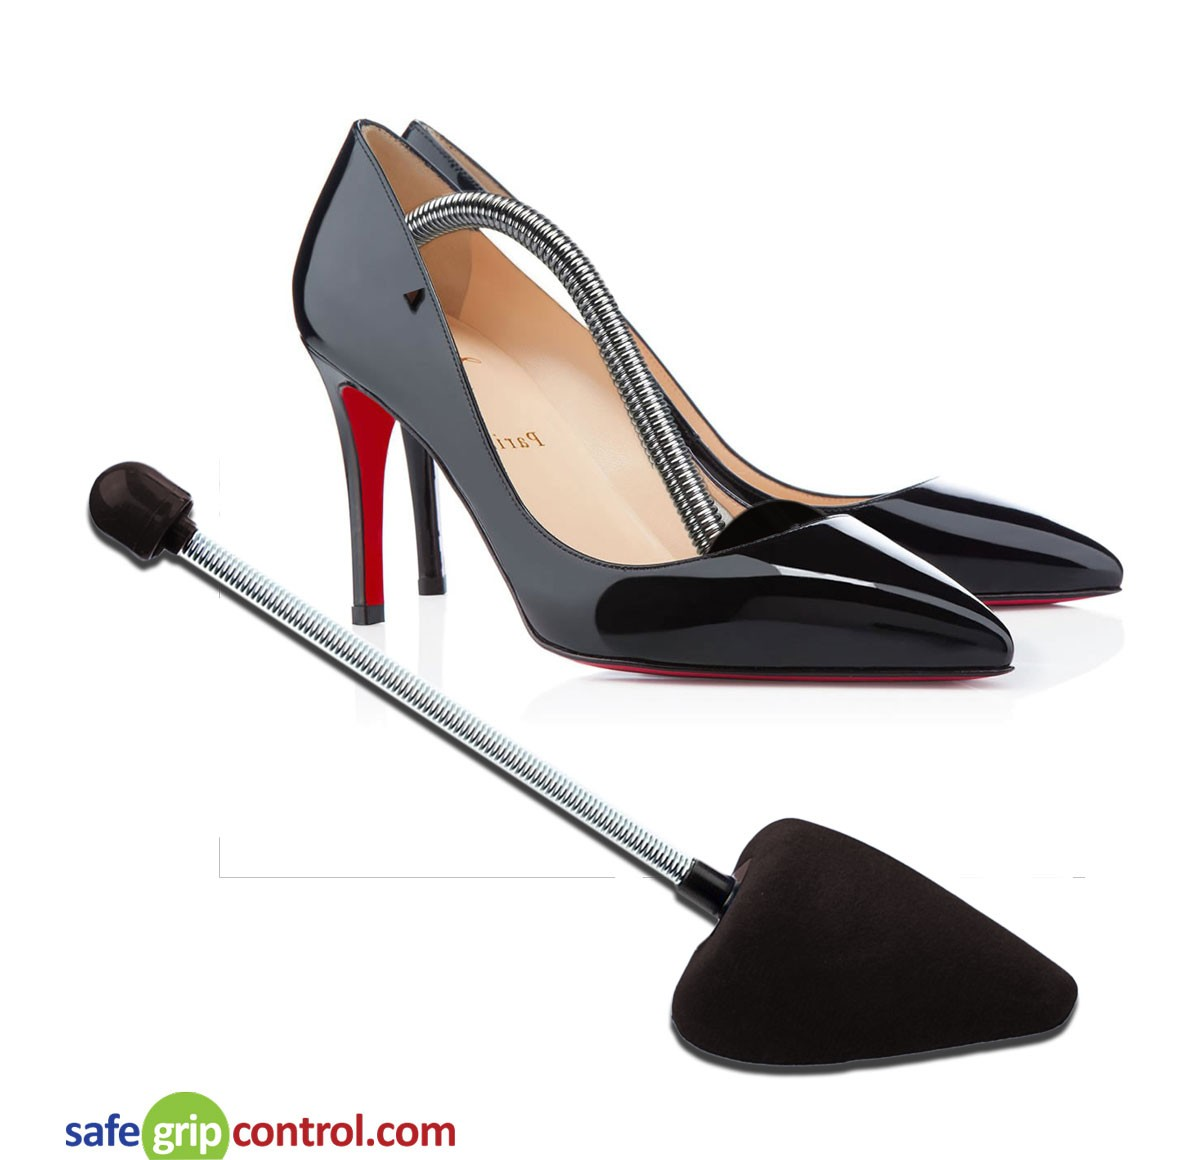 e188cf7af4c4 Shoe Trees Christian Louboutin Shoes